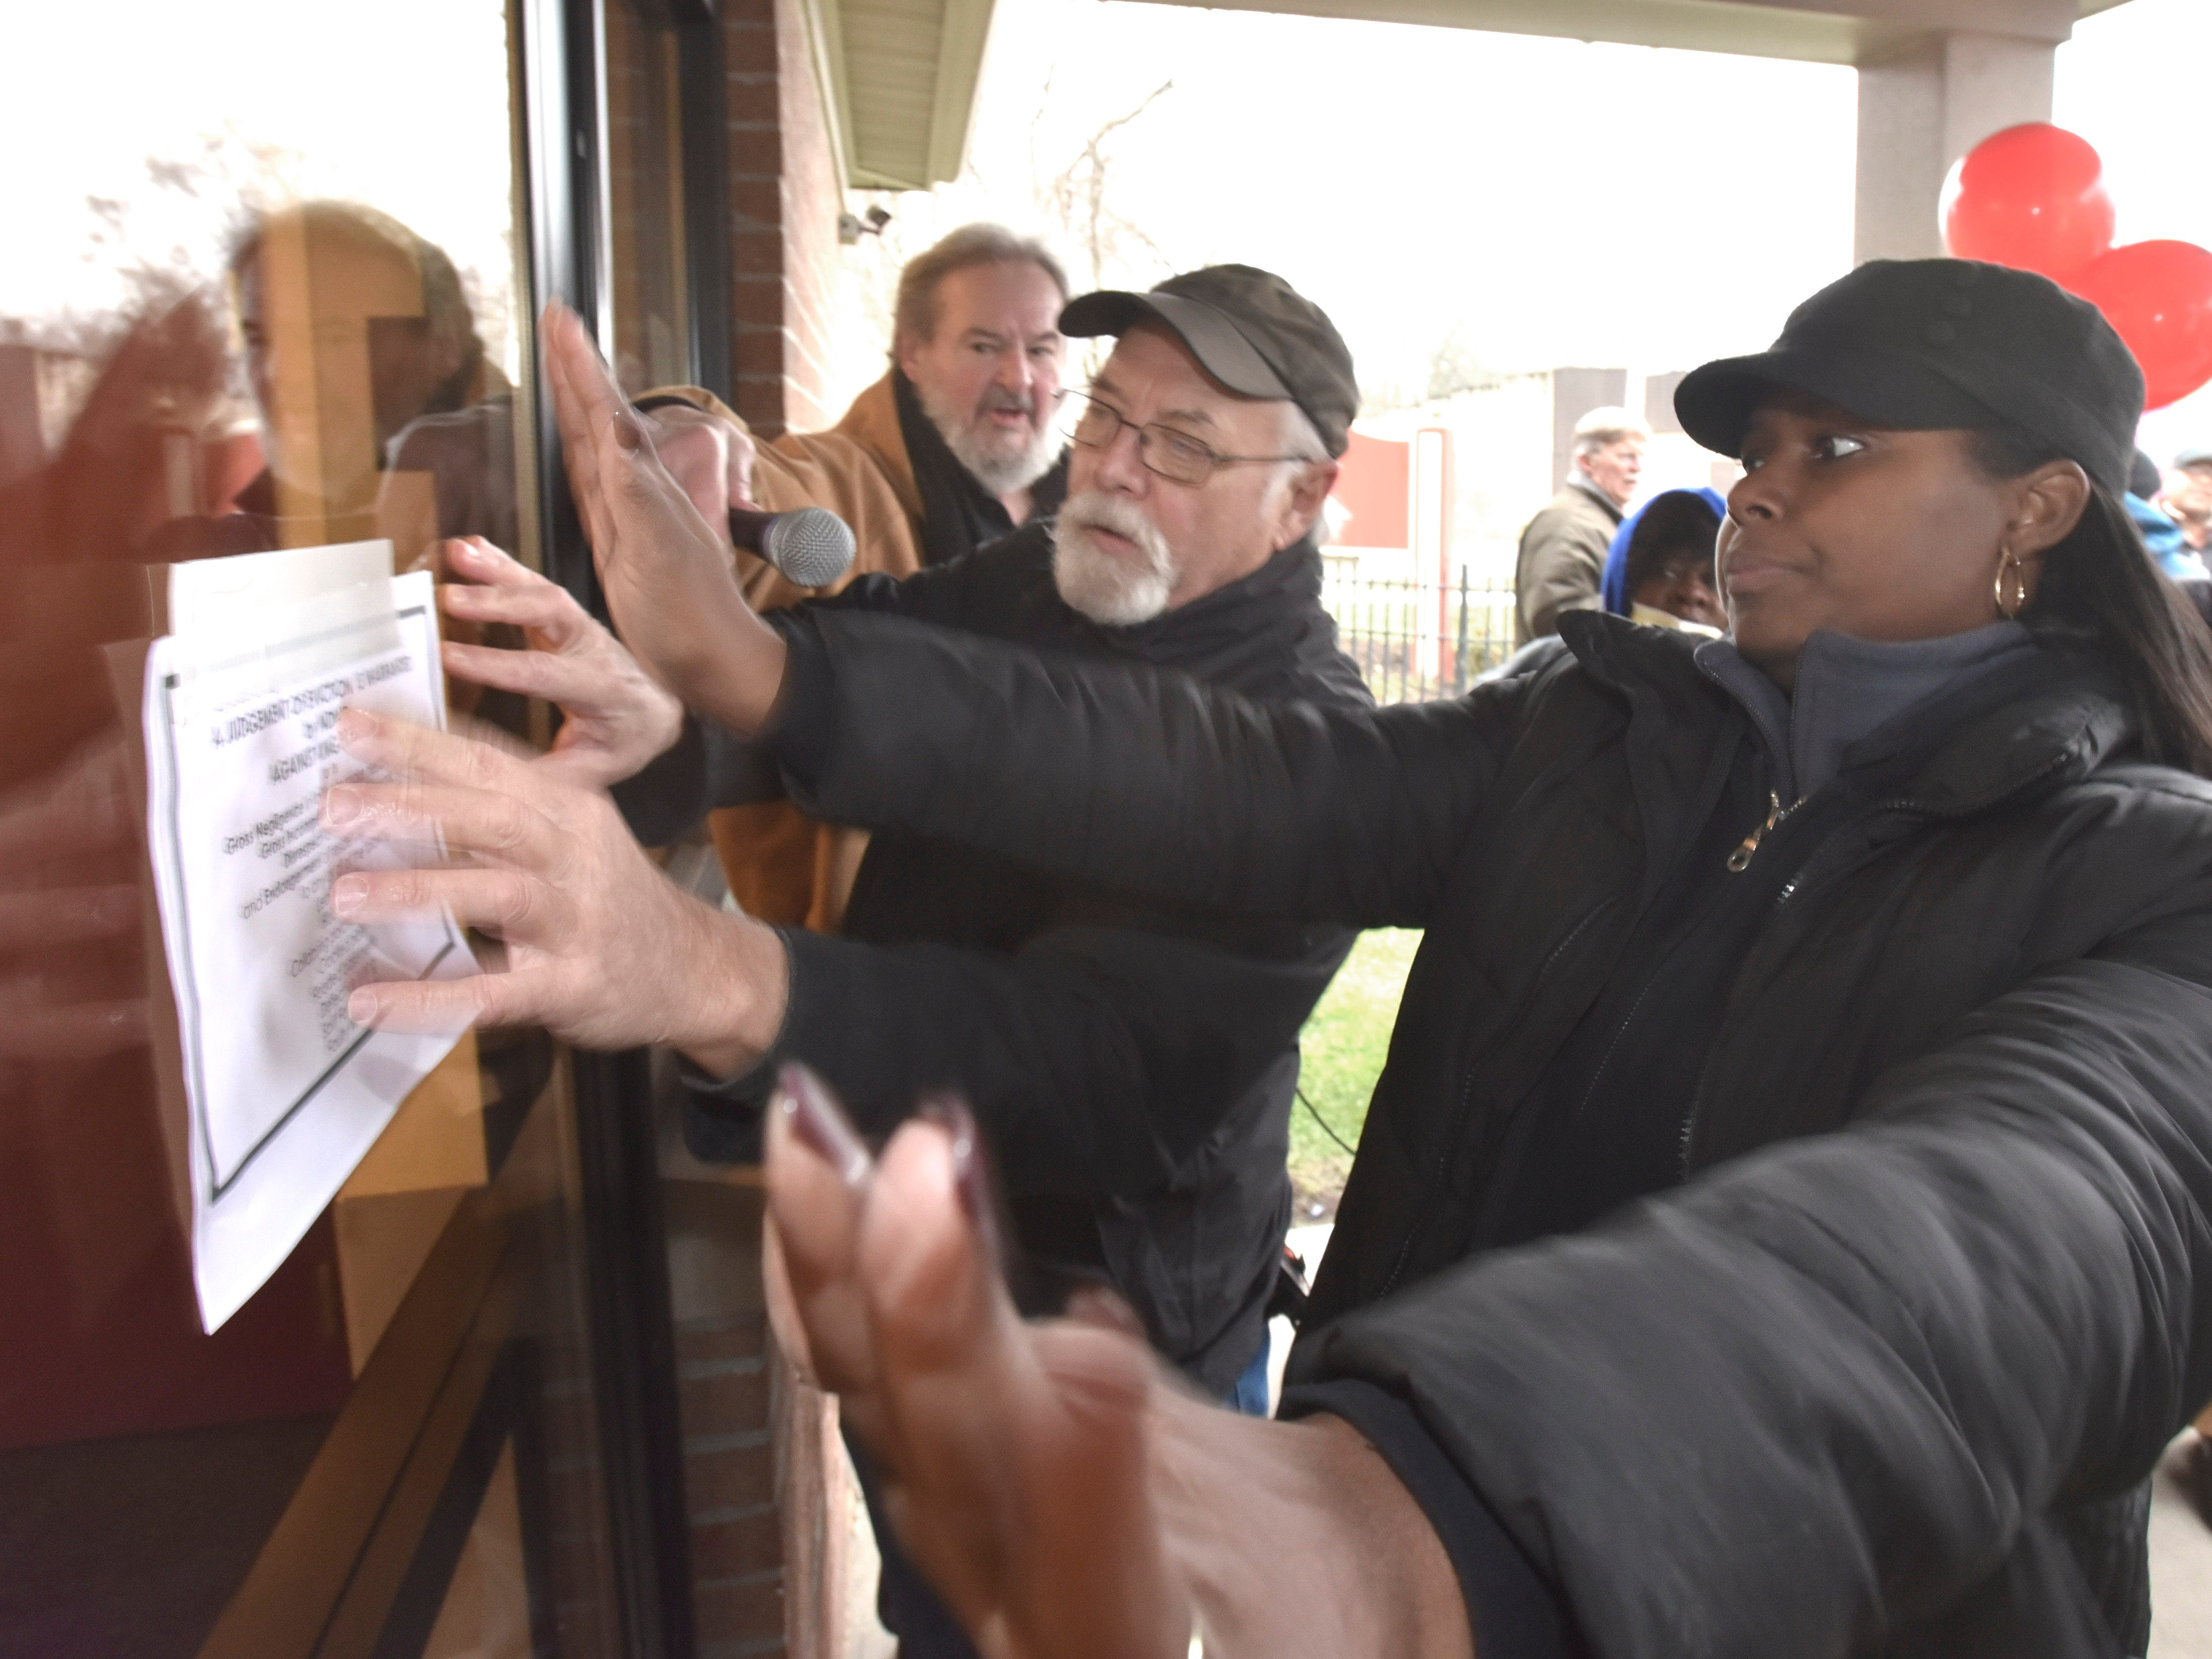 Supporter Steve Babson, left, and 19-year Brightmoor Homes resident and event organizer Soummer Crawford post one of their eviction notices on the front door of the KMG Prestige Management Company offices.